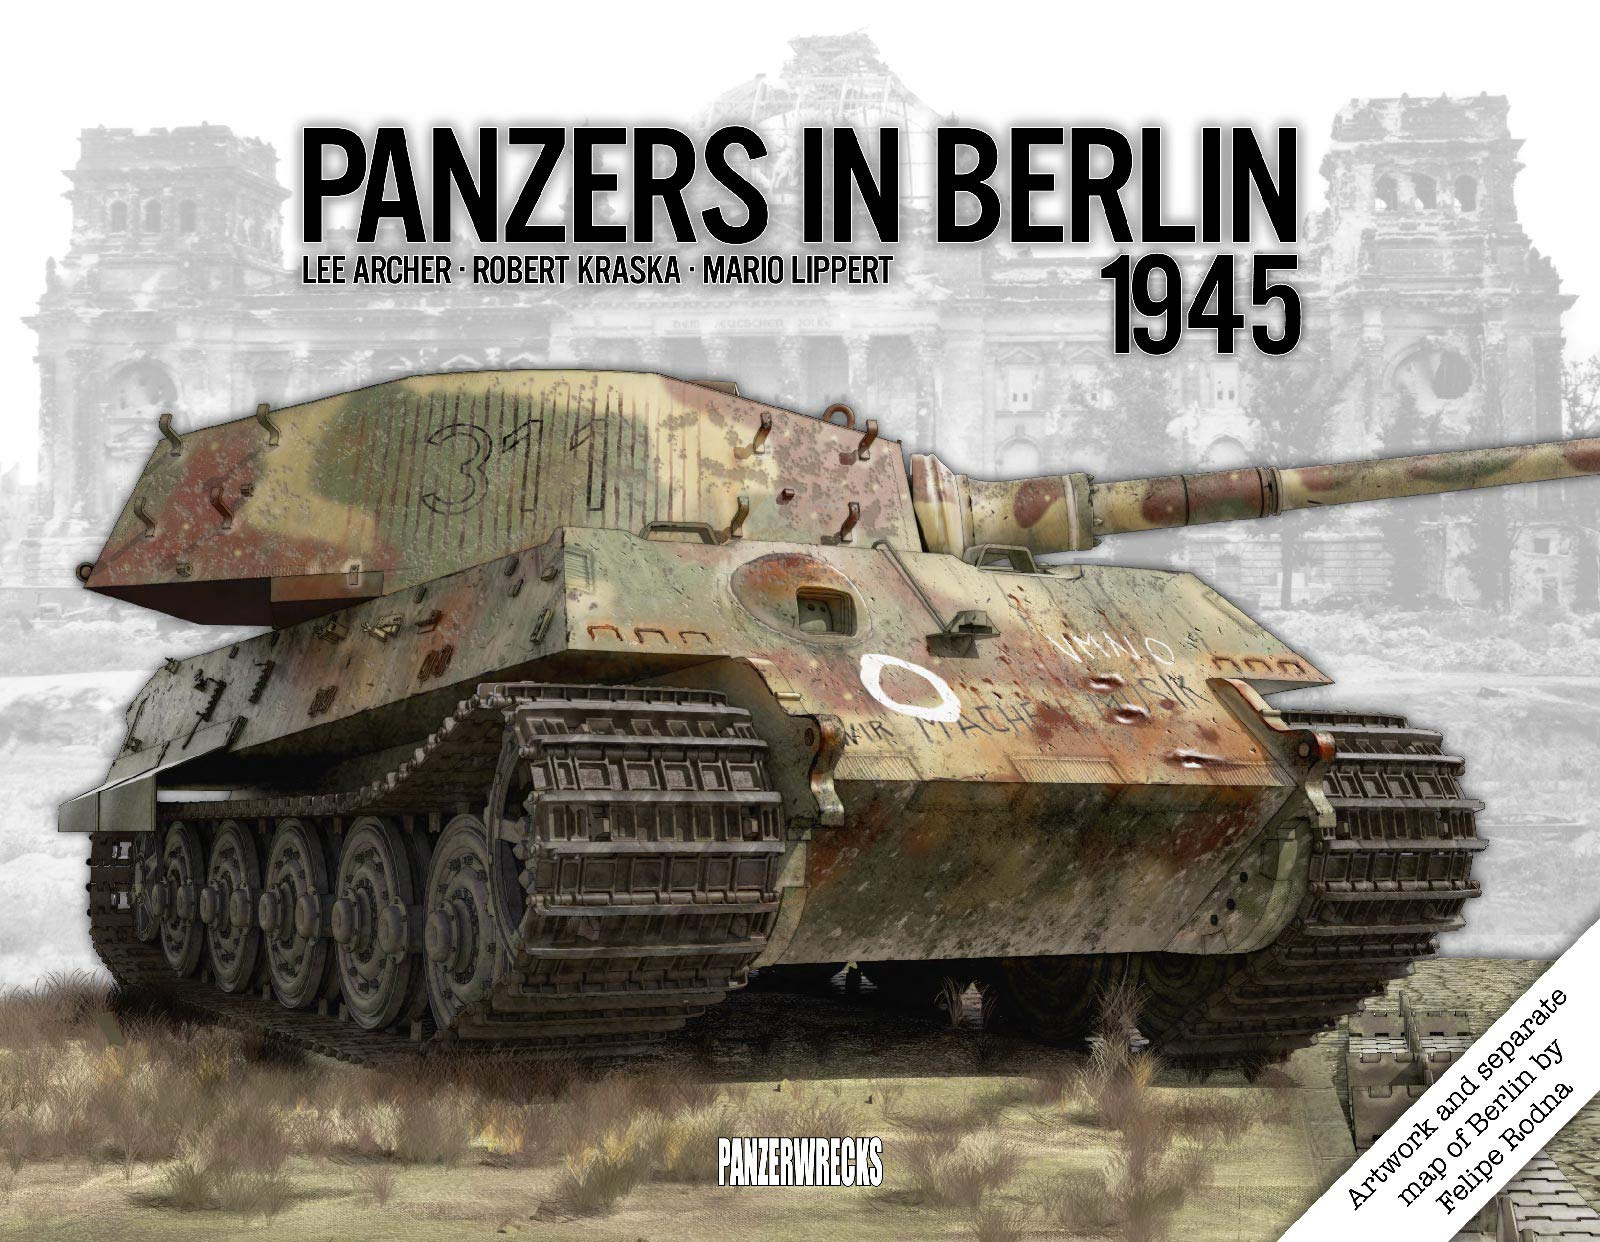 Panzers in Berlin 1945 by Panzerwrecks